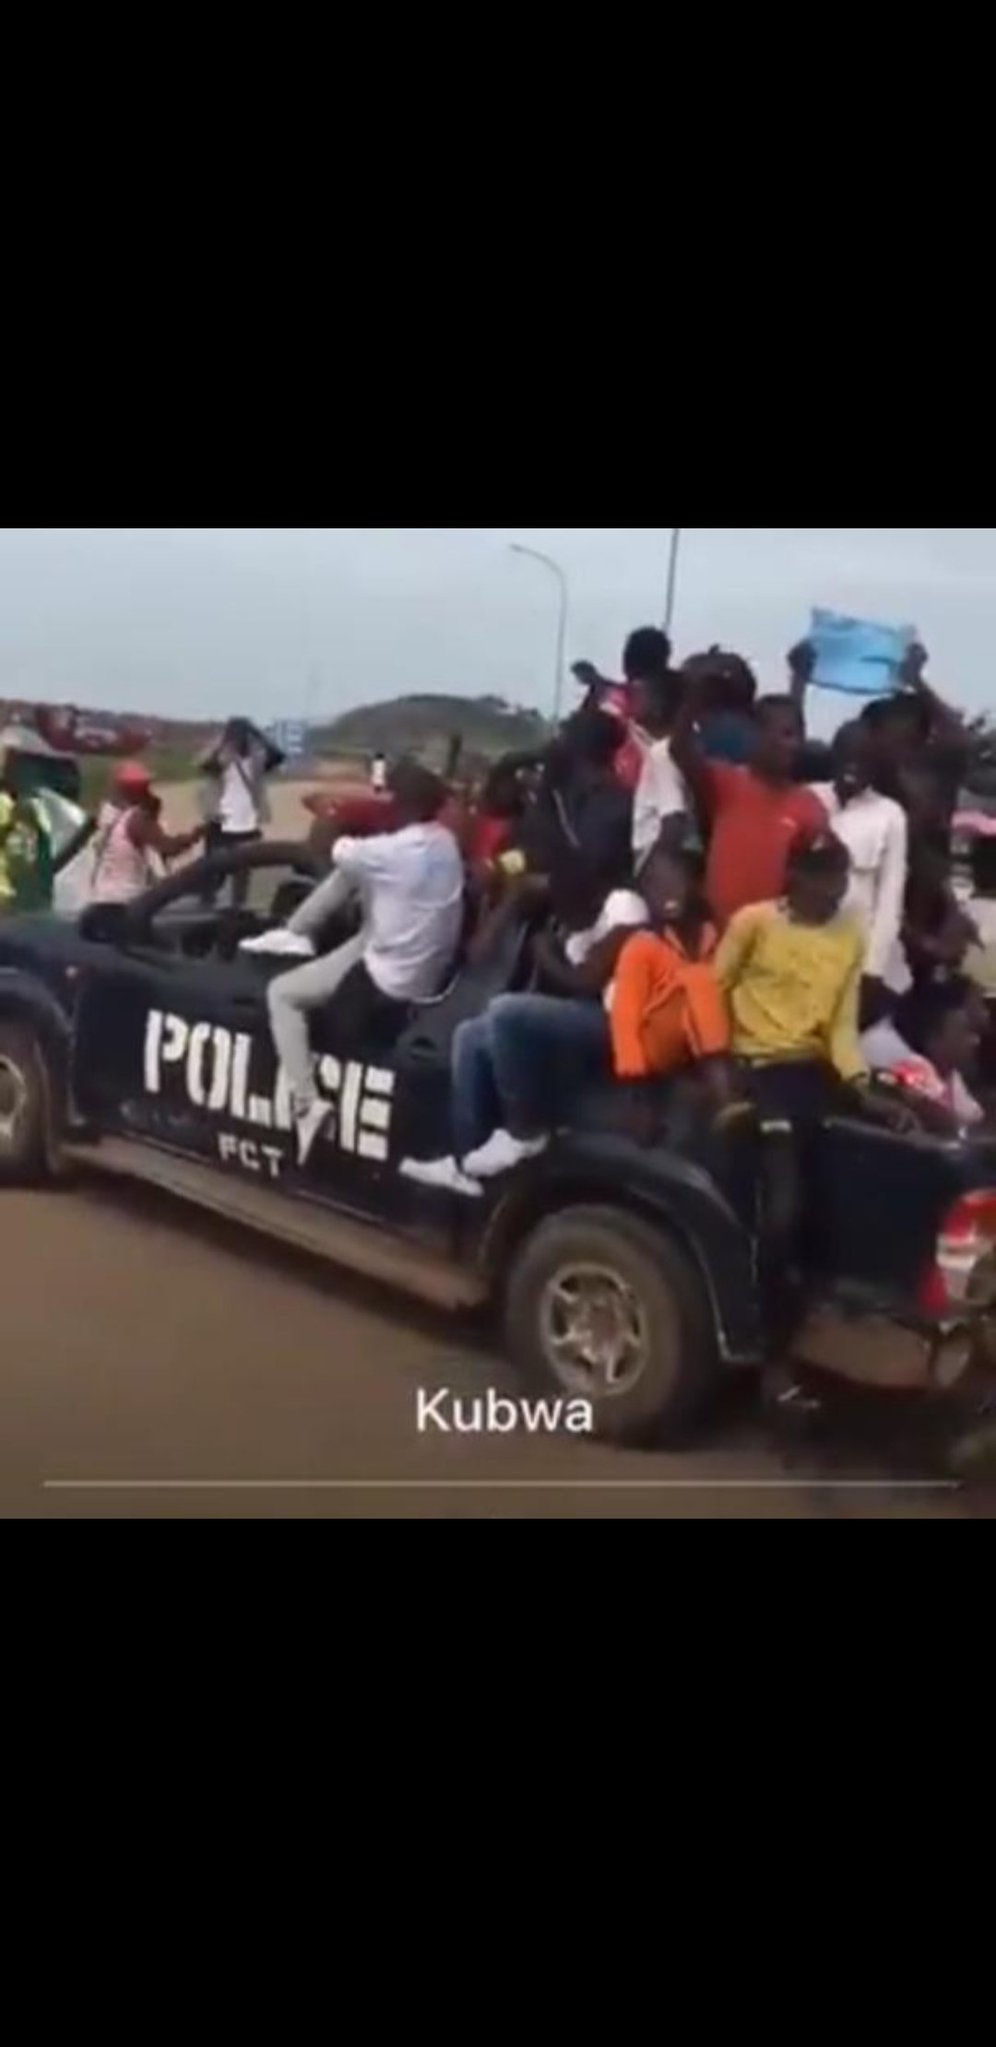 Hoodlums who attacked Abuja protesters came in police van (Photo), Hoodlums who attacked Abuja protesters came in police van (Photo), Latest Nigeria News, Daily Devotionals & Celebrity Gossips - Chidispalace